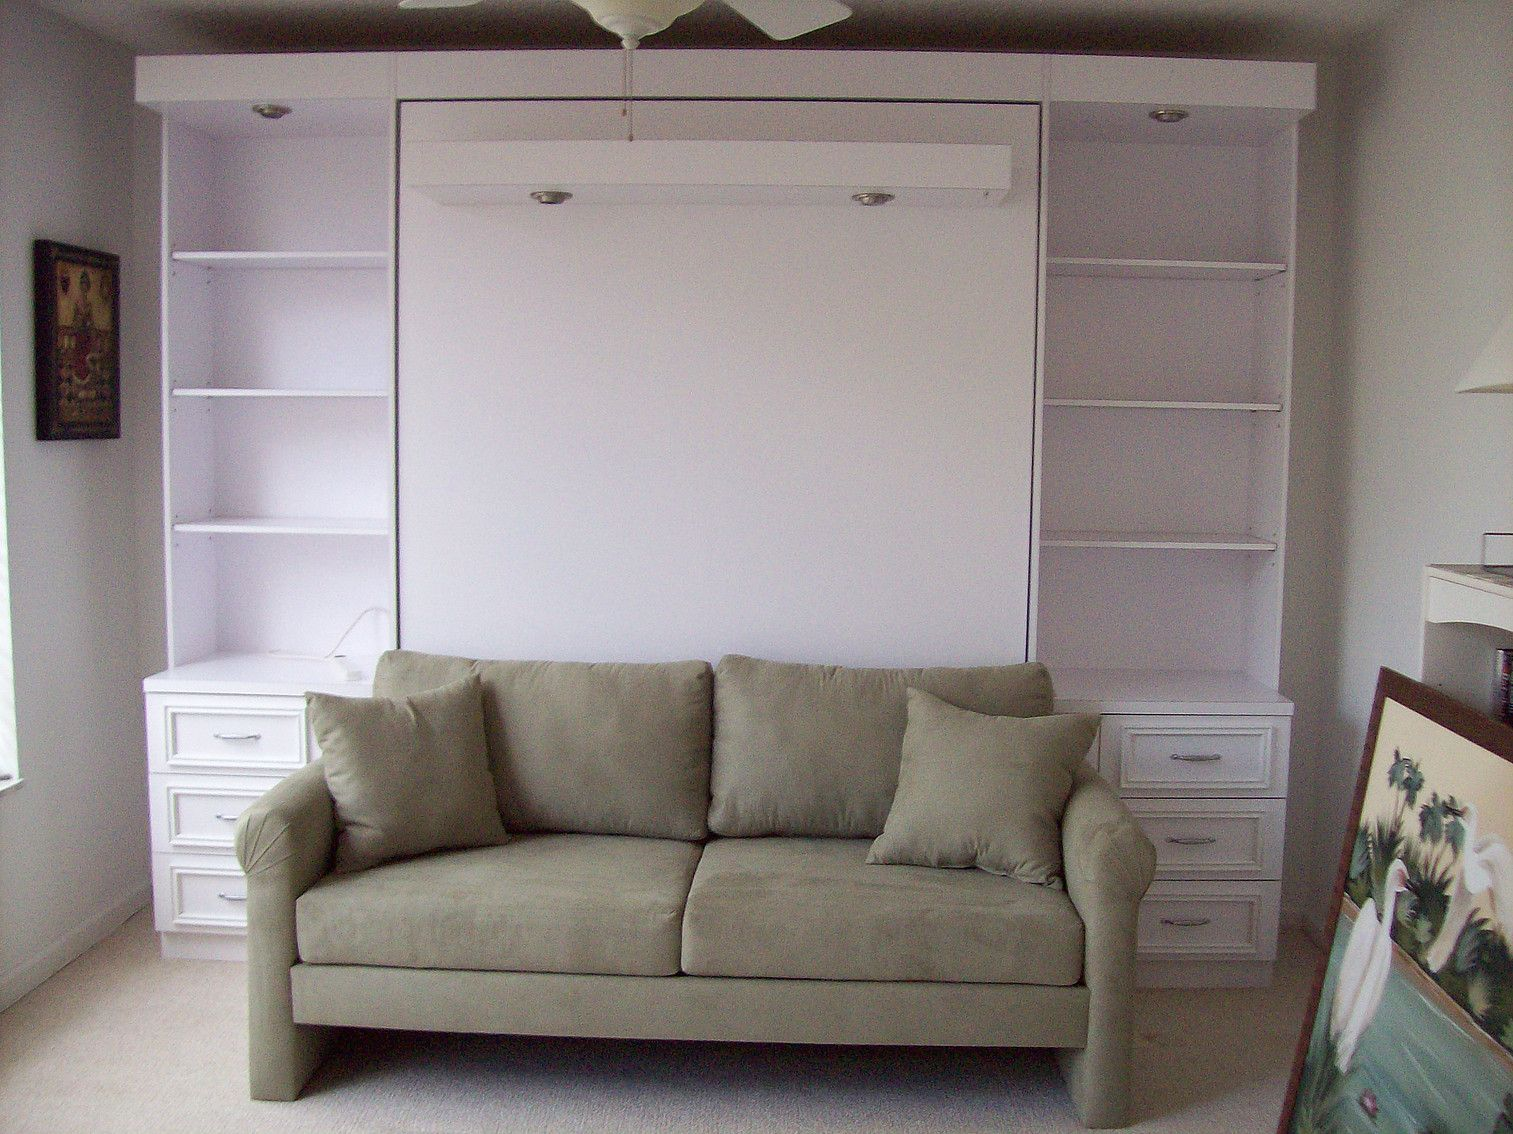 Create more room for guests work hobbies and everyday living with